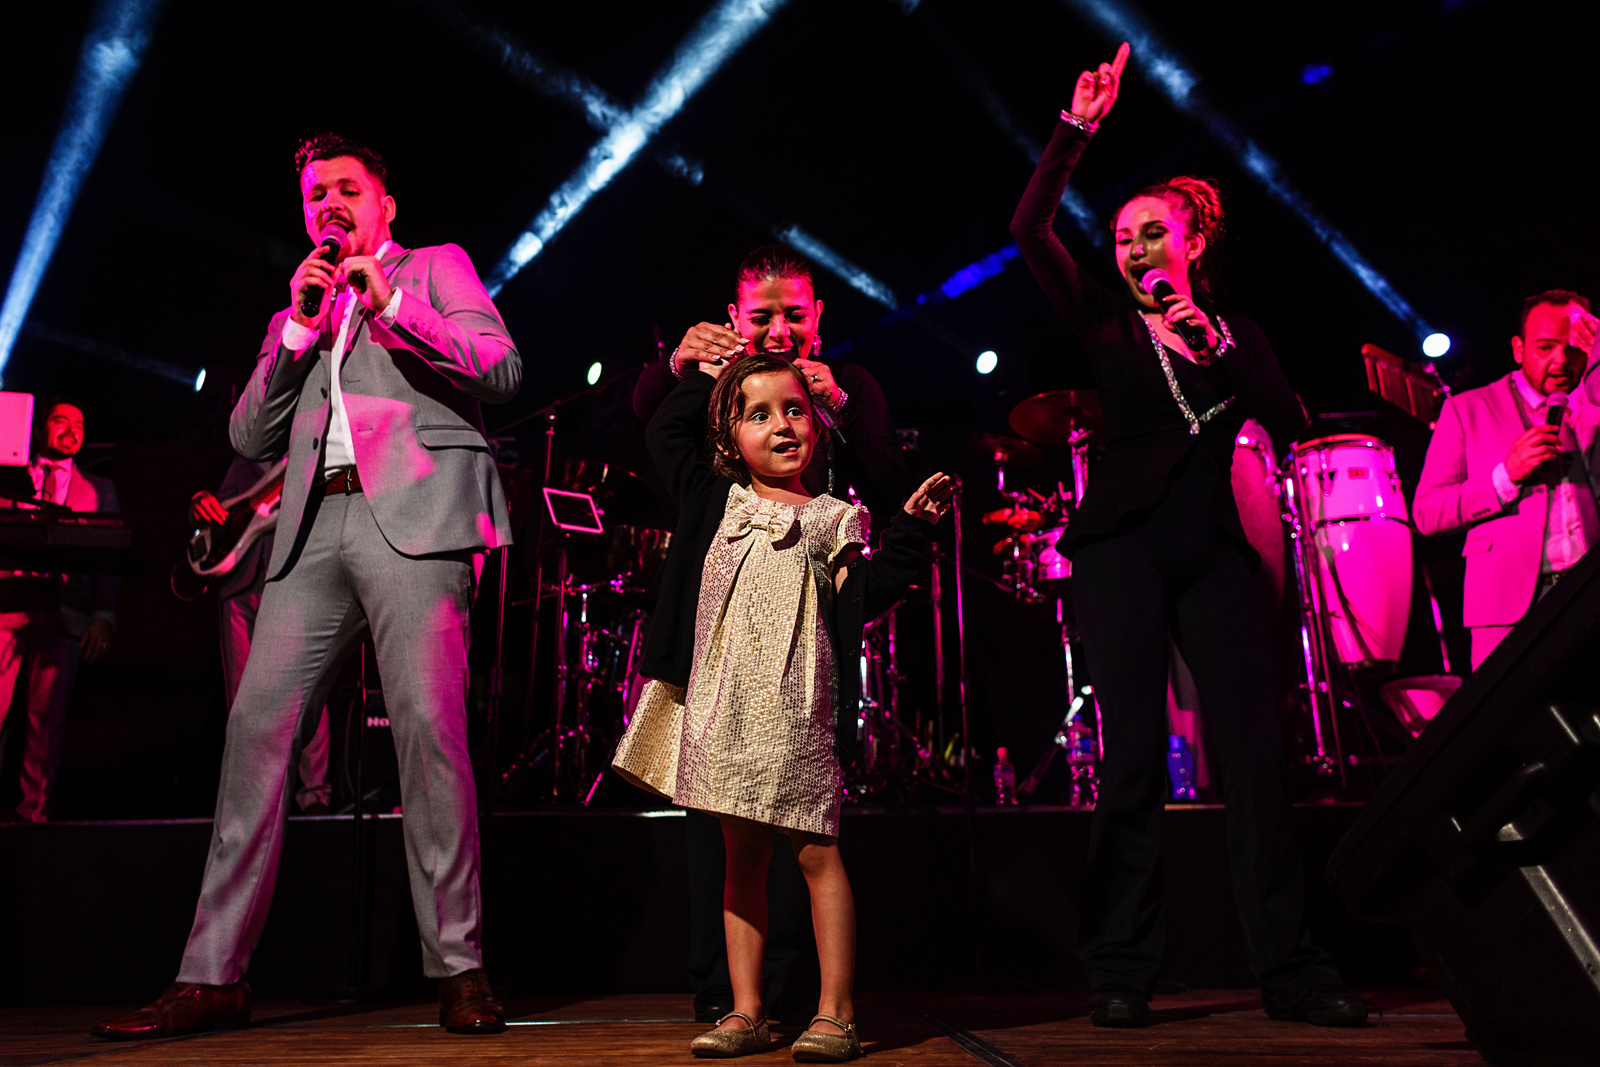 Little girl dances on stage with singers of the music band for the wedding